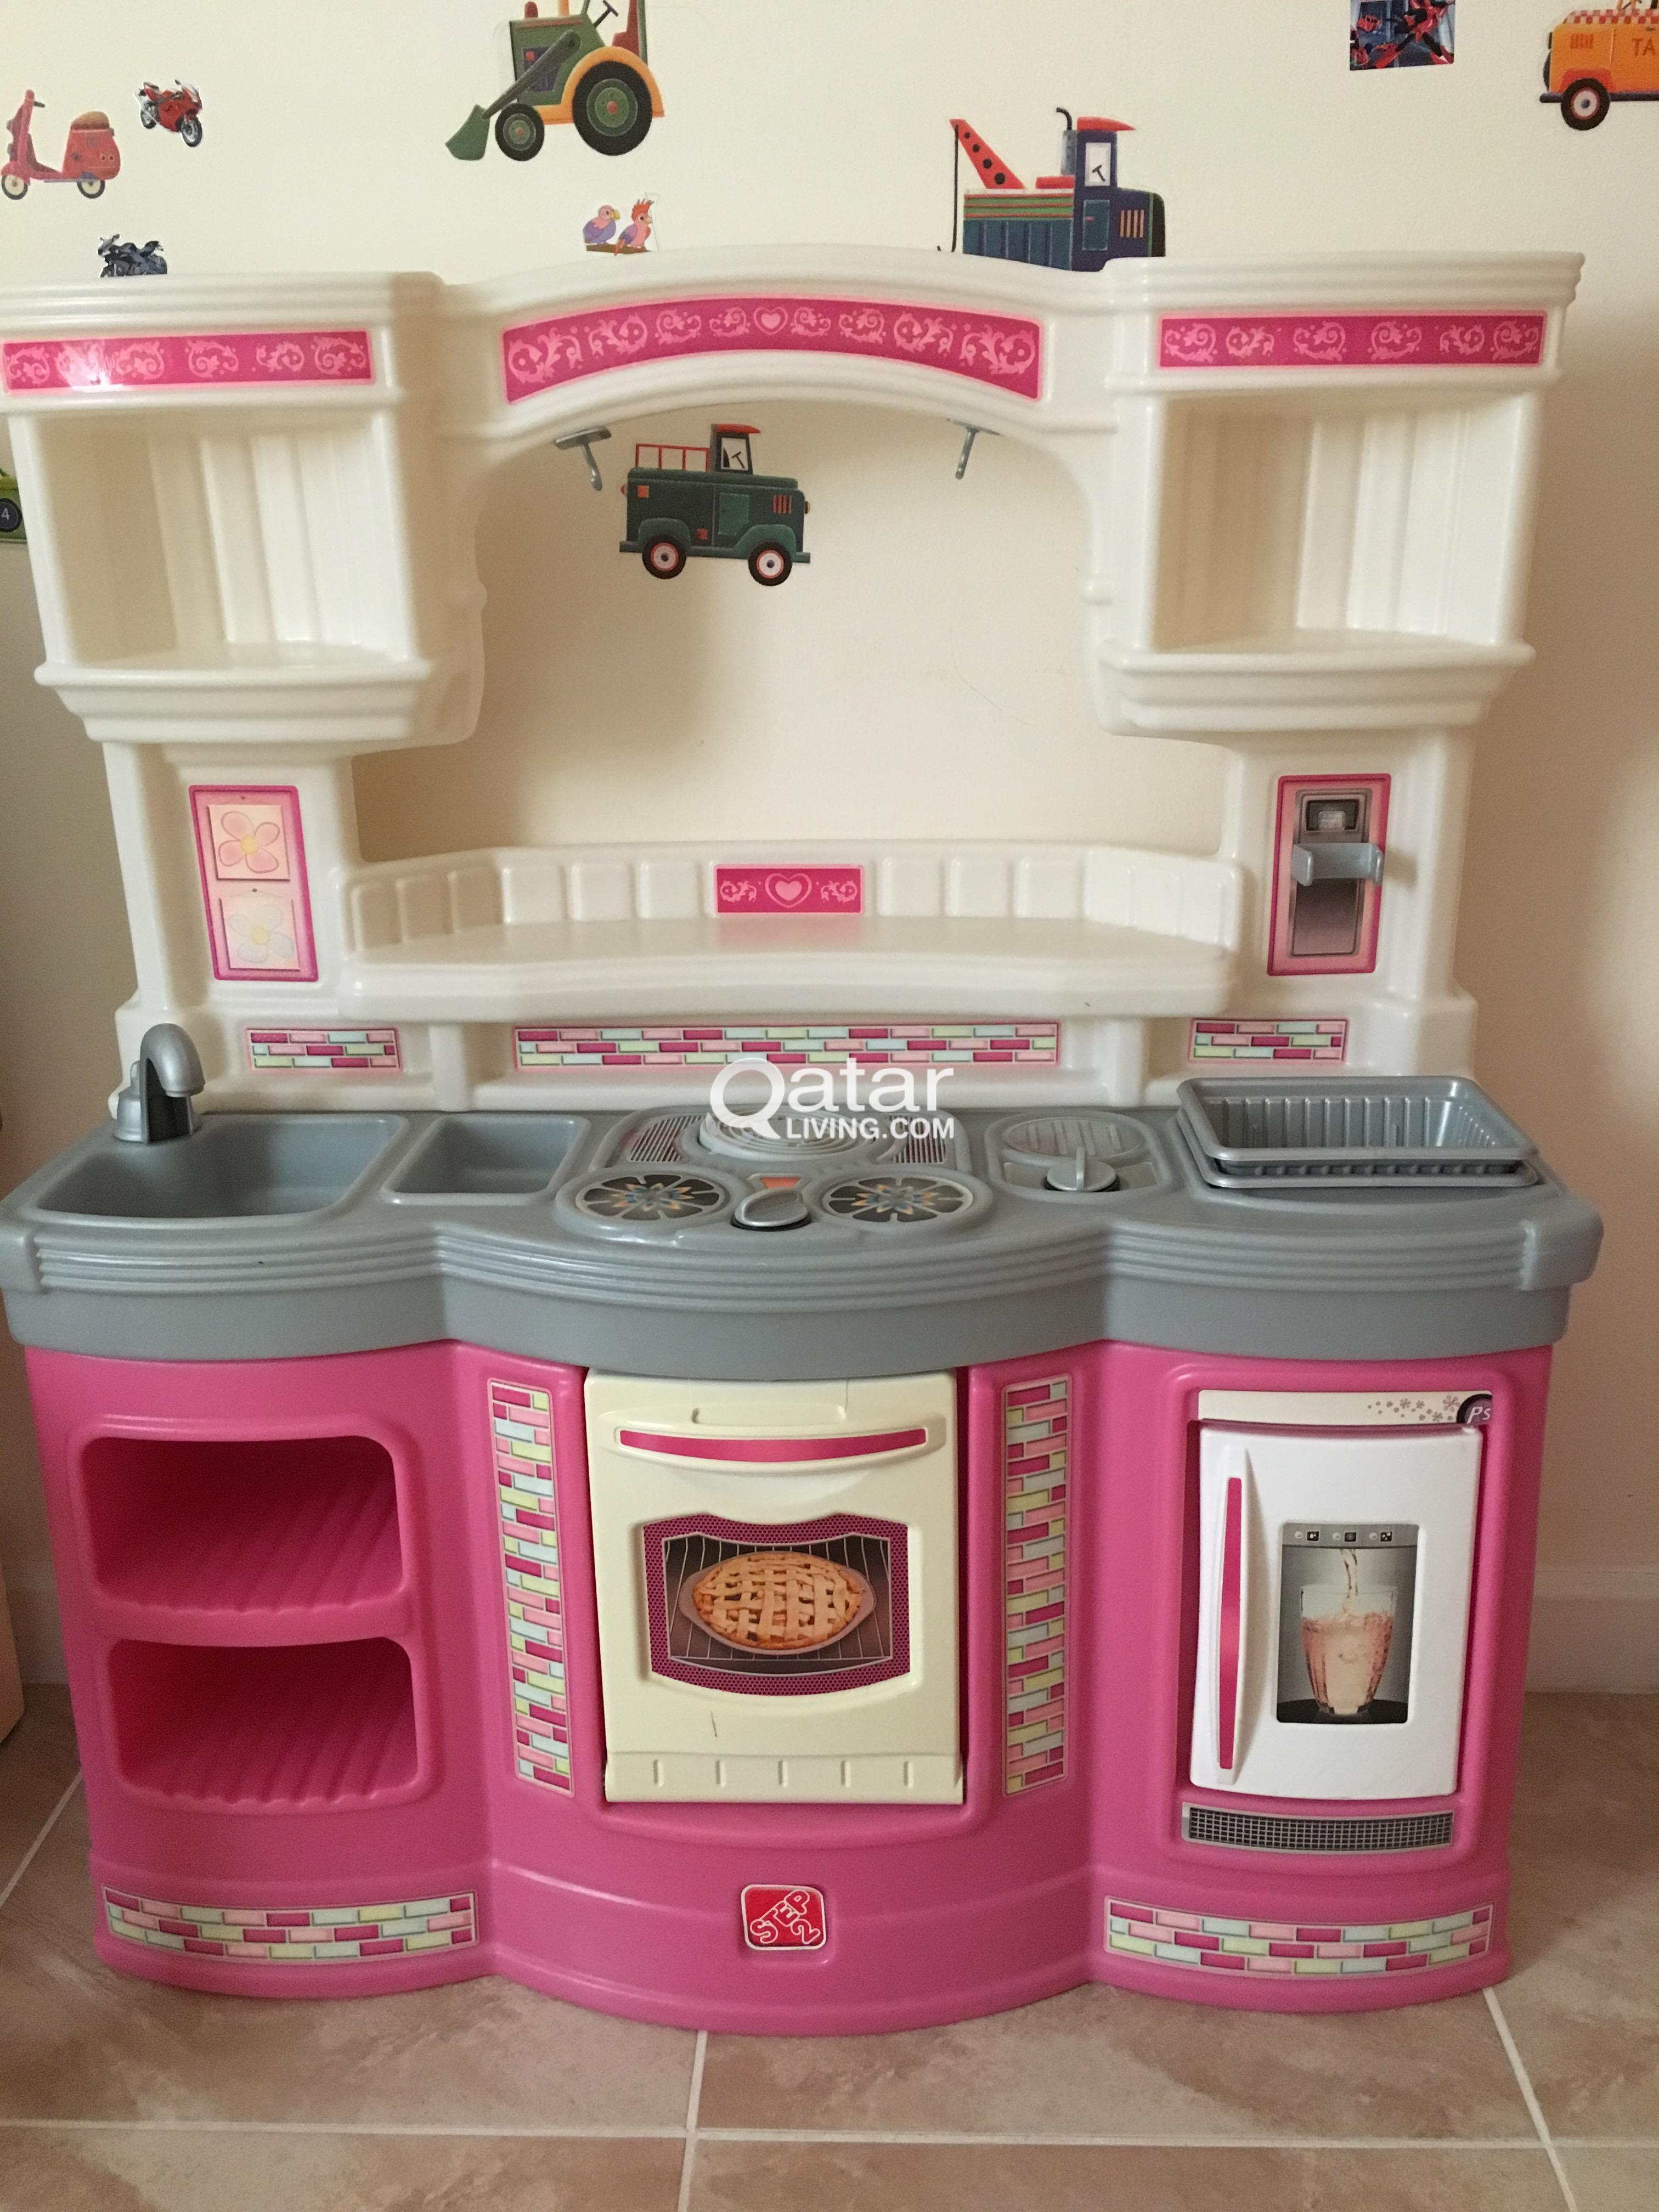 Awesome Step 2 Rise And Shine Kitchen From Toys Are Us Qatar Living Download Free Architecture Designs Xerocsunscenecom